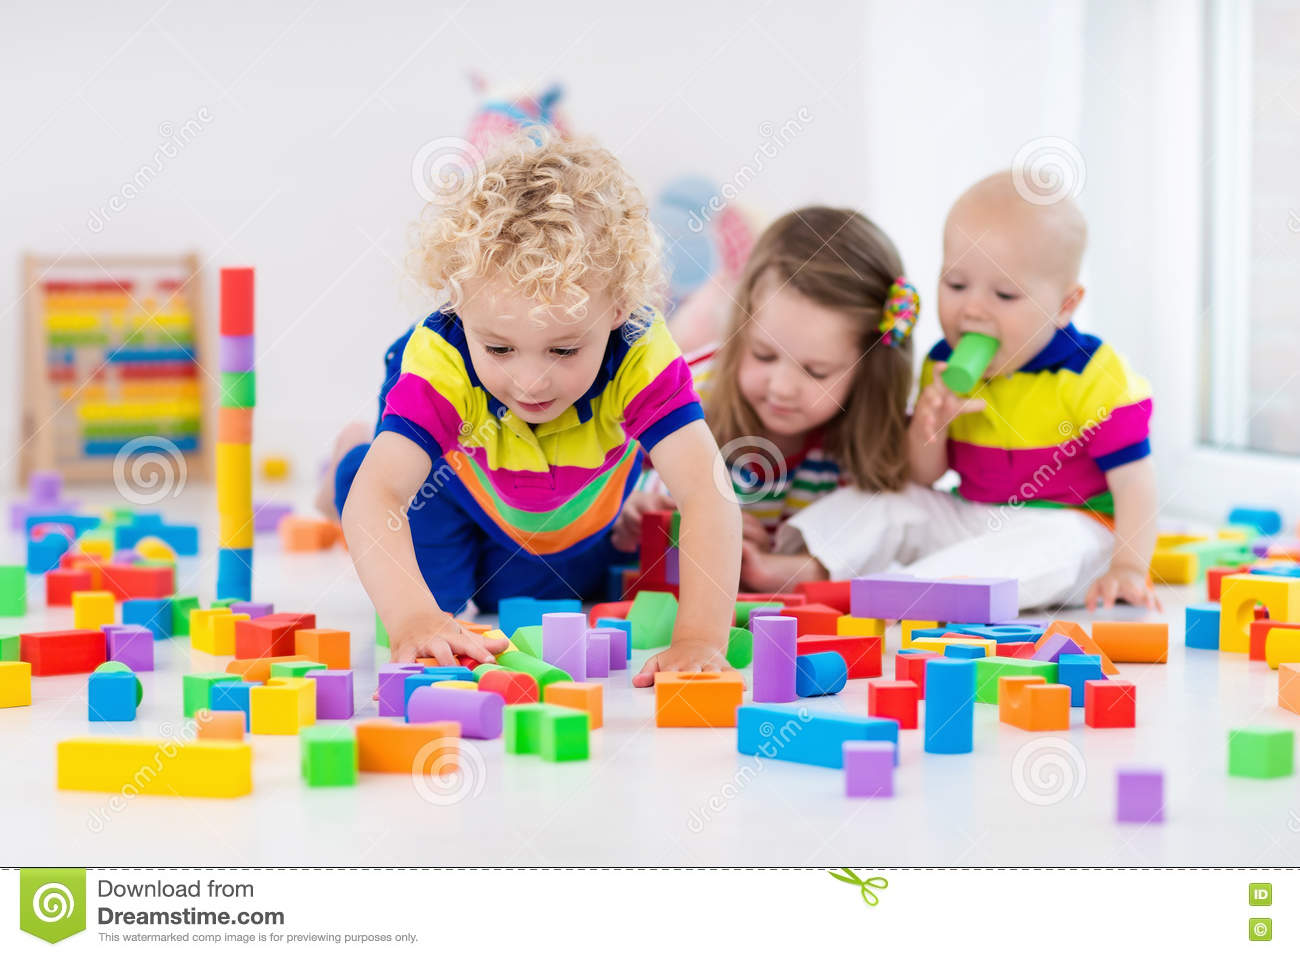 Childcare Floor Plans Kids Playing With Colorful Toy Blocks Stock Photo Image